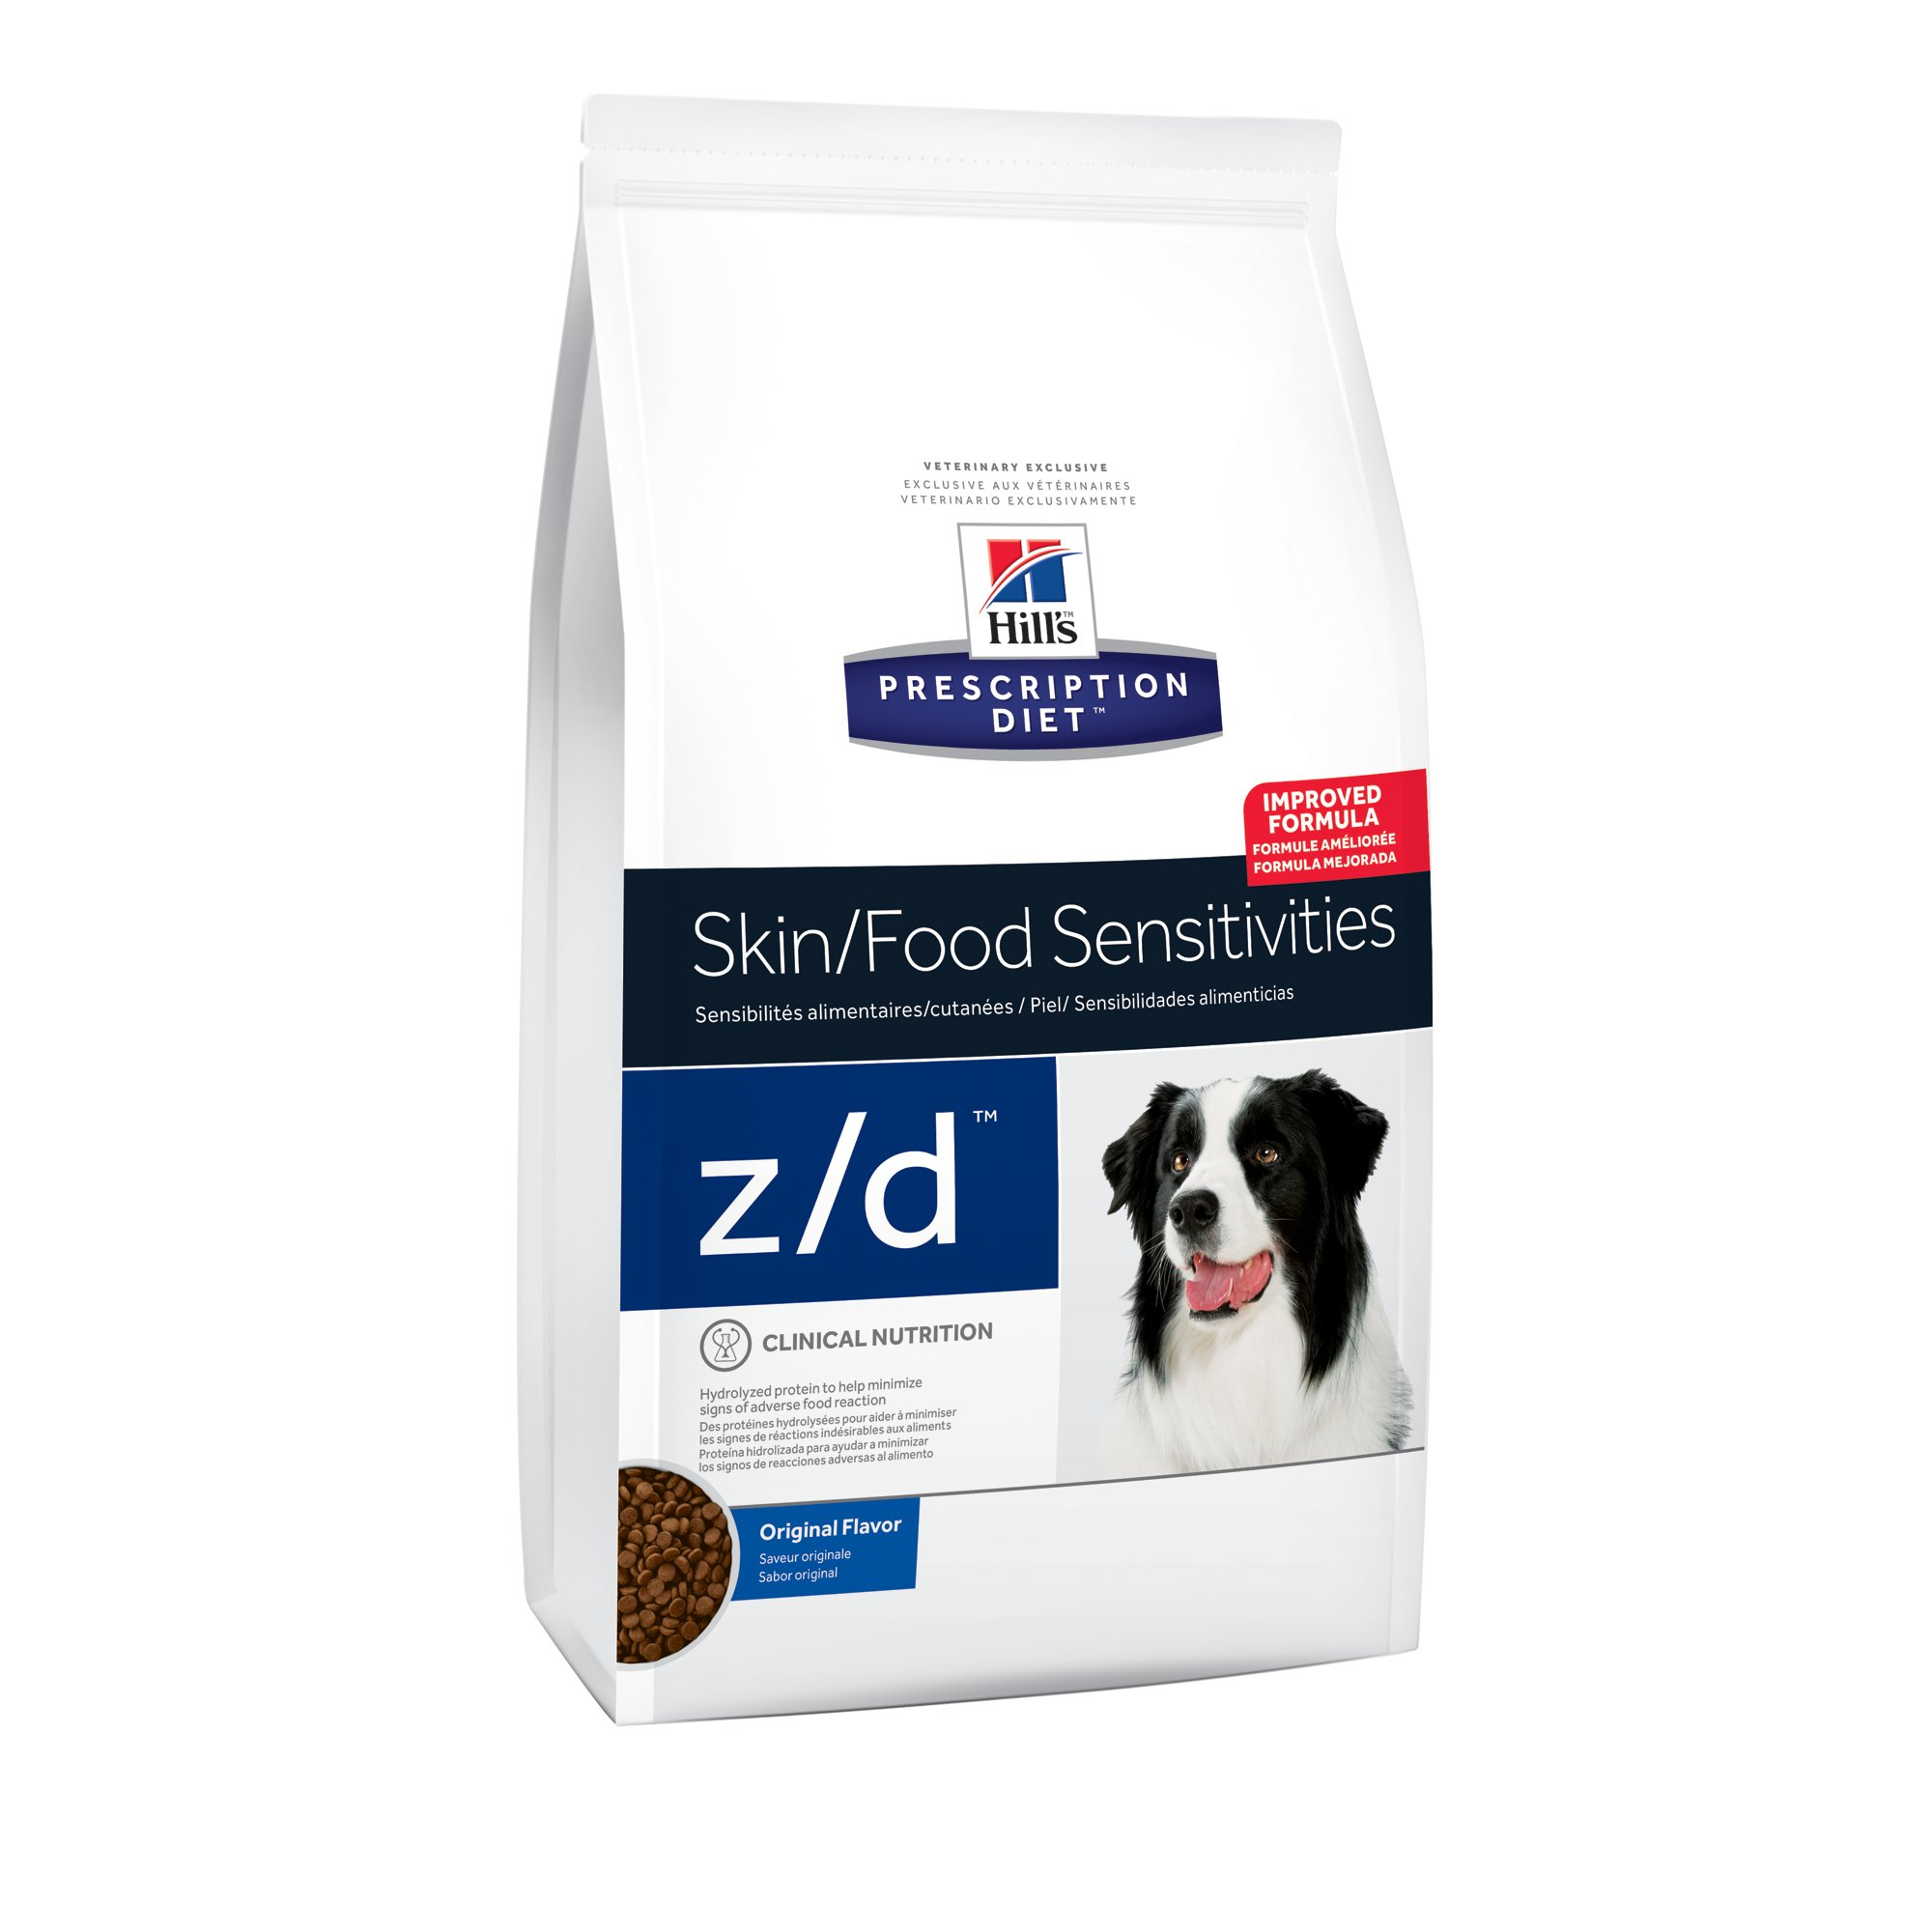 Zd Prescription Dog Food